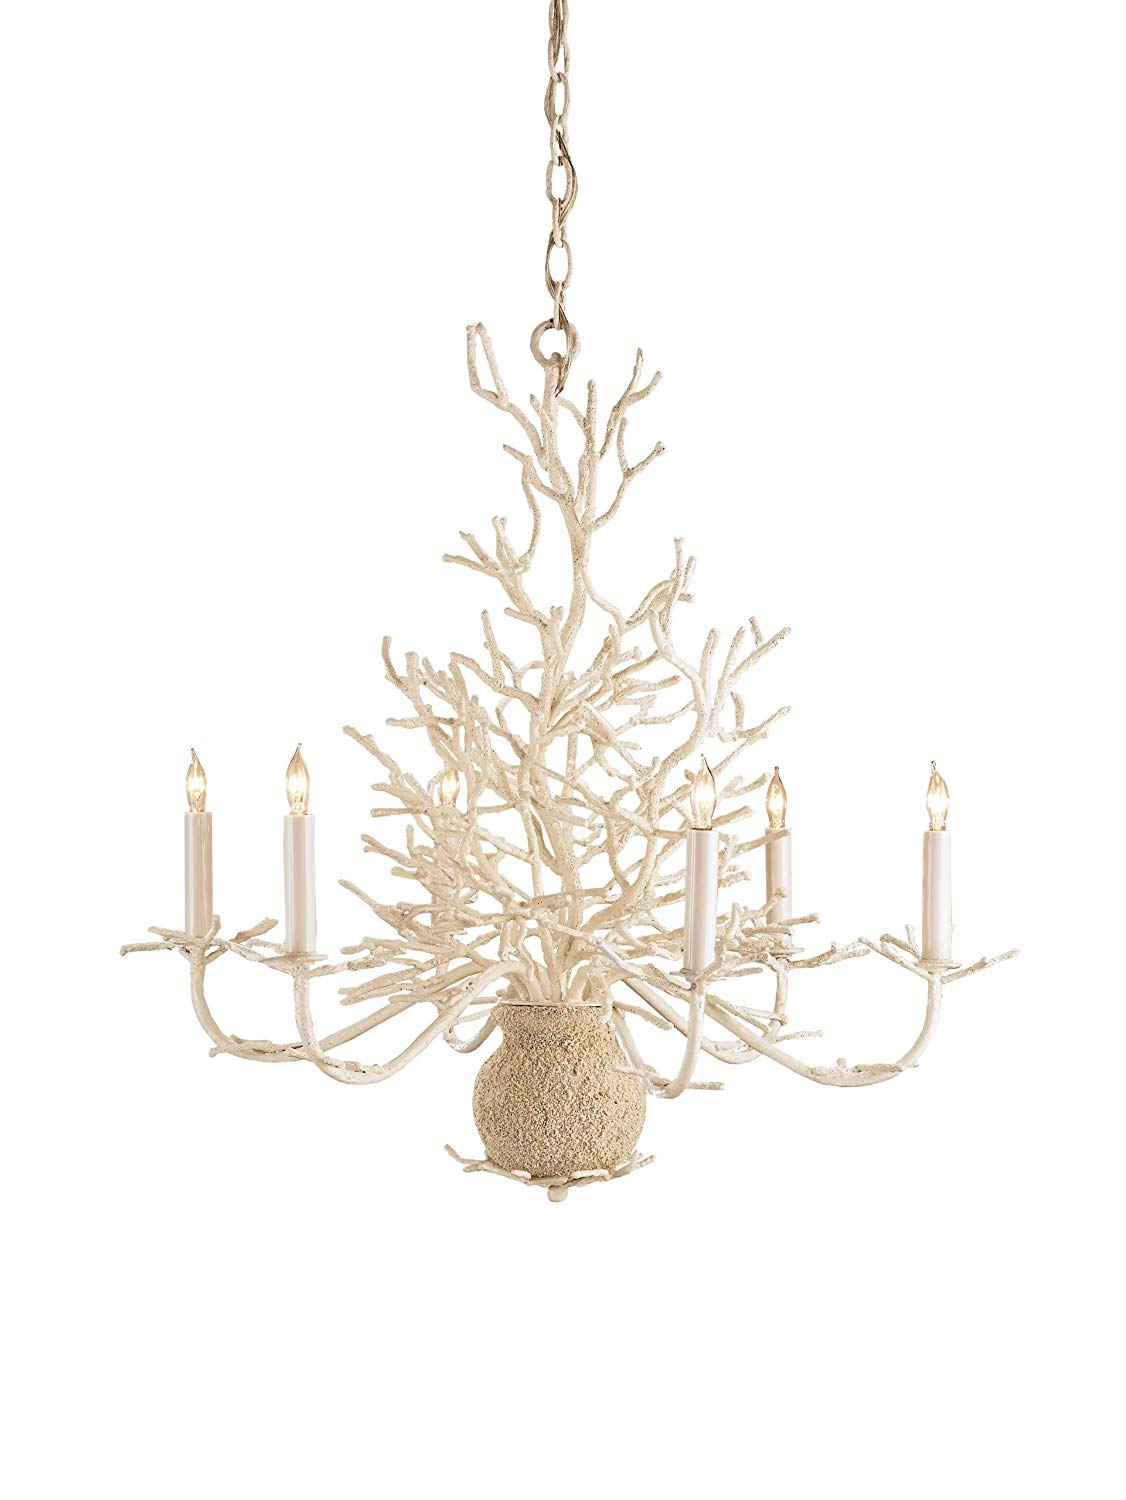 Currey and Company 9218 Seaward 6-Light Chandelier, White Faux Coral with Natural Sand Finish